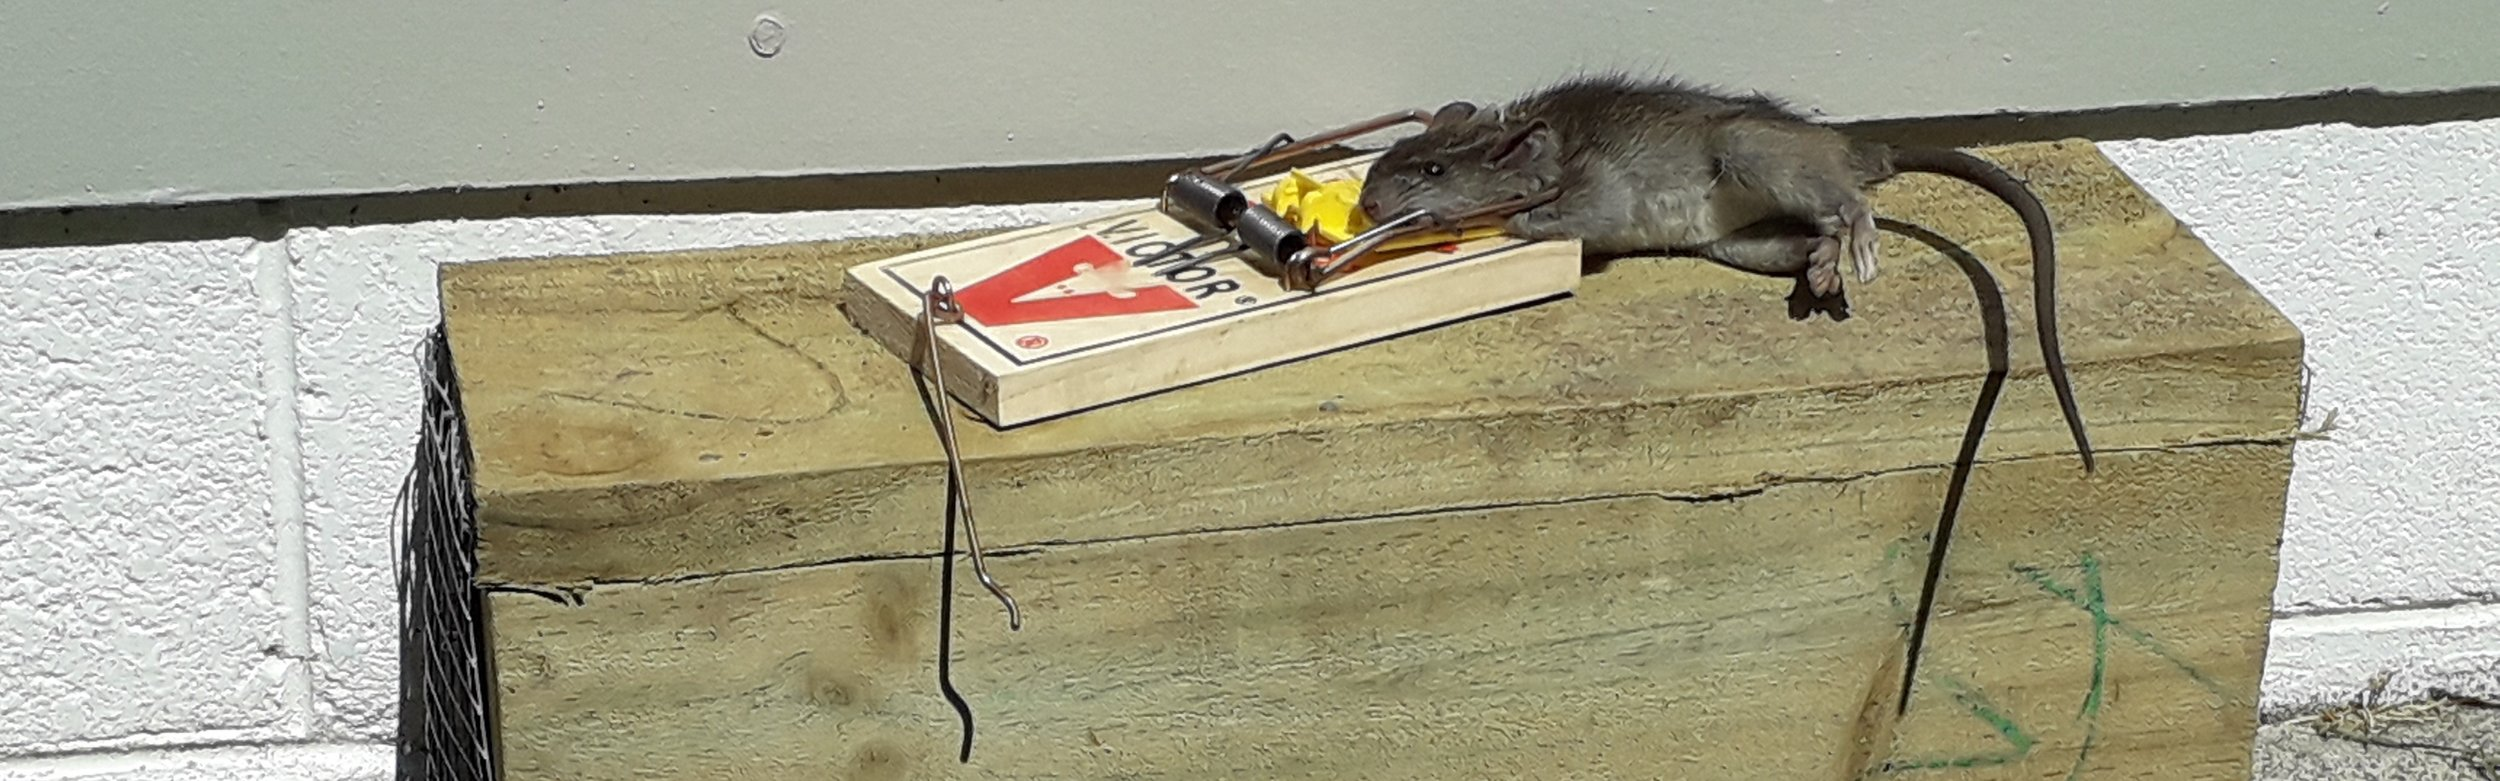 Rat caught with Victor trap.jpg